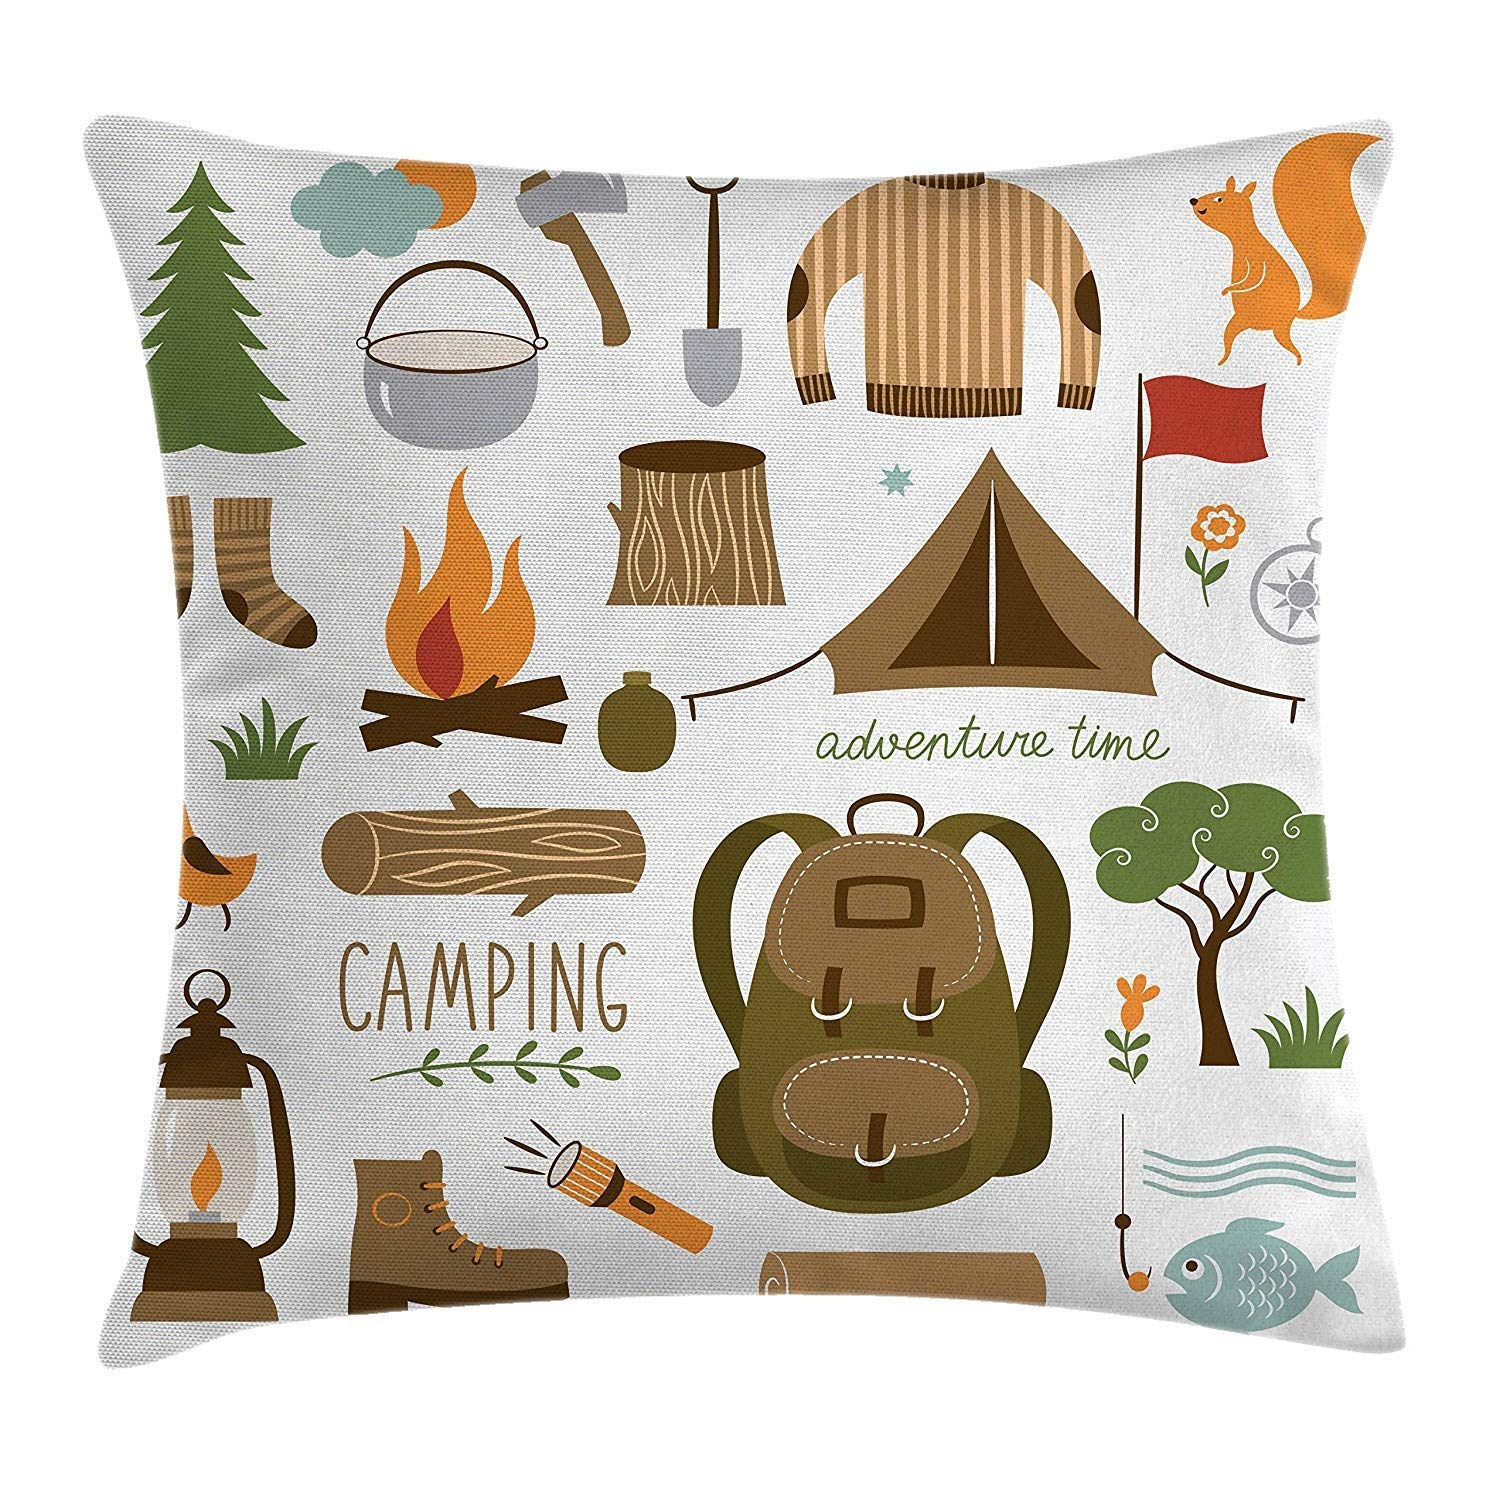 Adventure Throw Pillow Cushion Cover Decorative Square Accent Pillow Case Multicolor 18 X 18 inches Camping Equipment Sleeping Bag Boots Campfire Shovel Hatchet Log Artwork Print